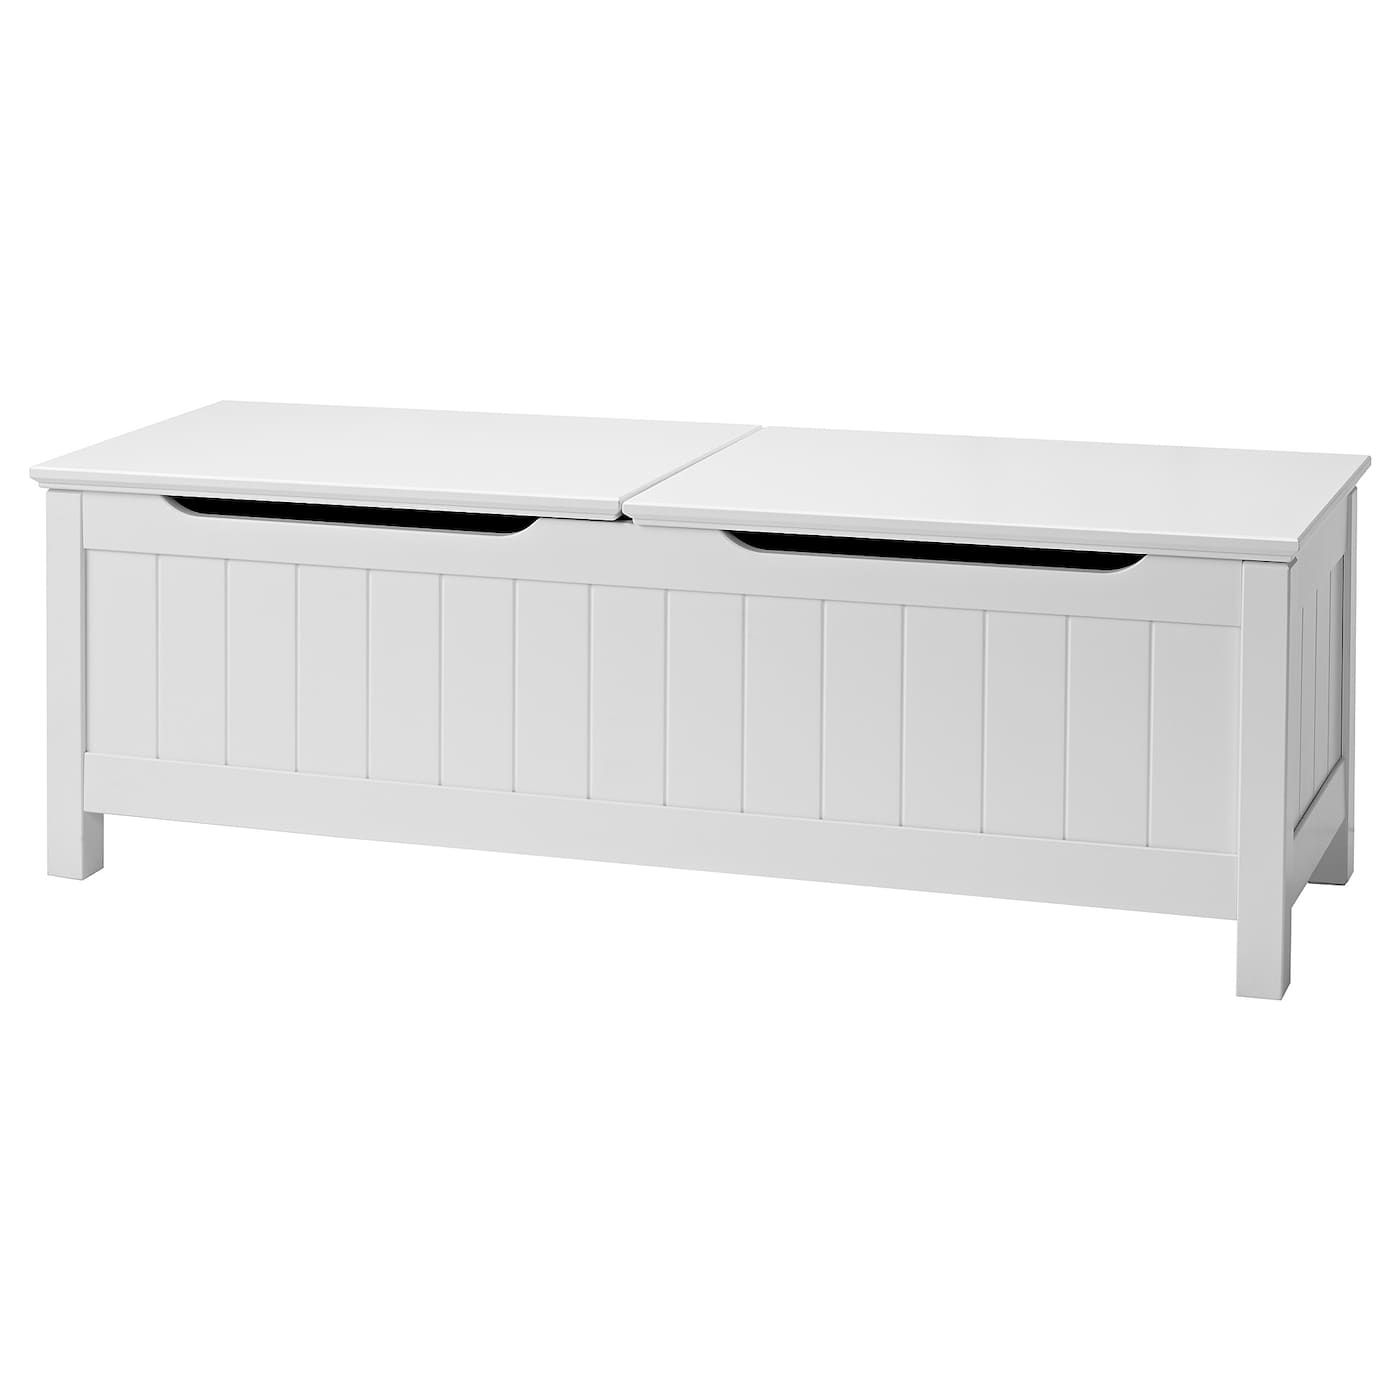 Ikea Undredal Storage Bench White Storage Bench Ikea Storage